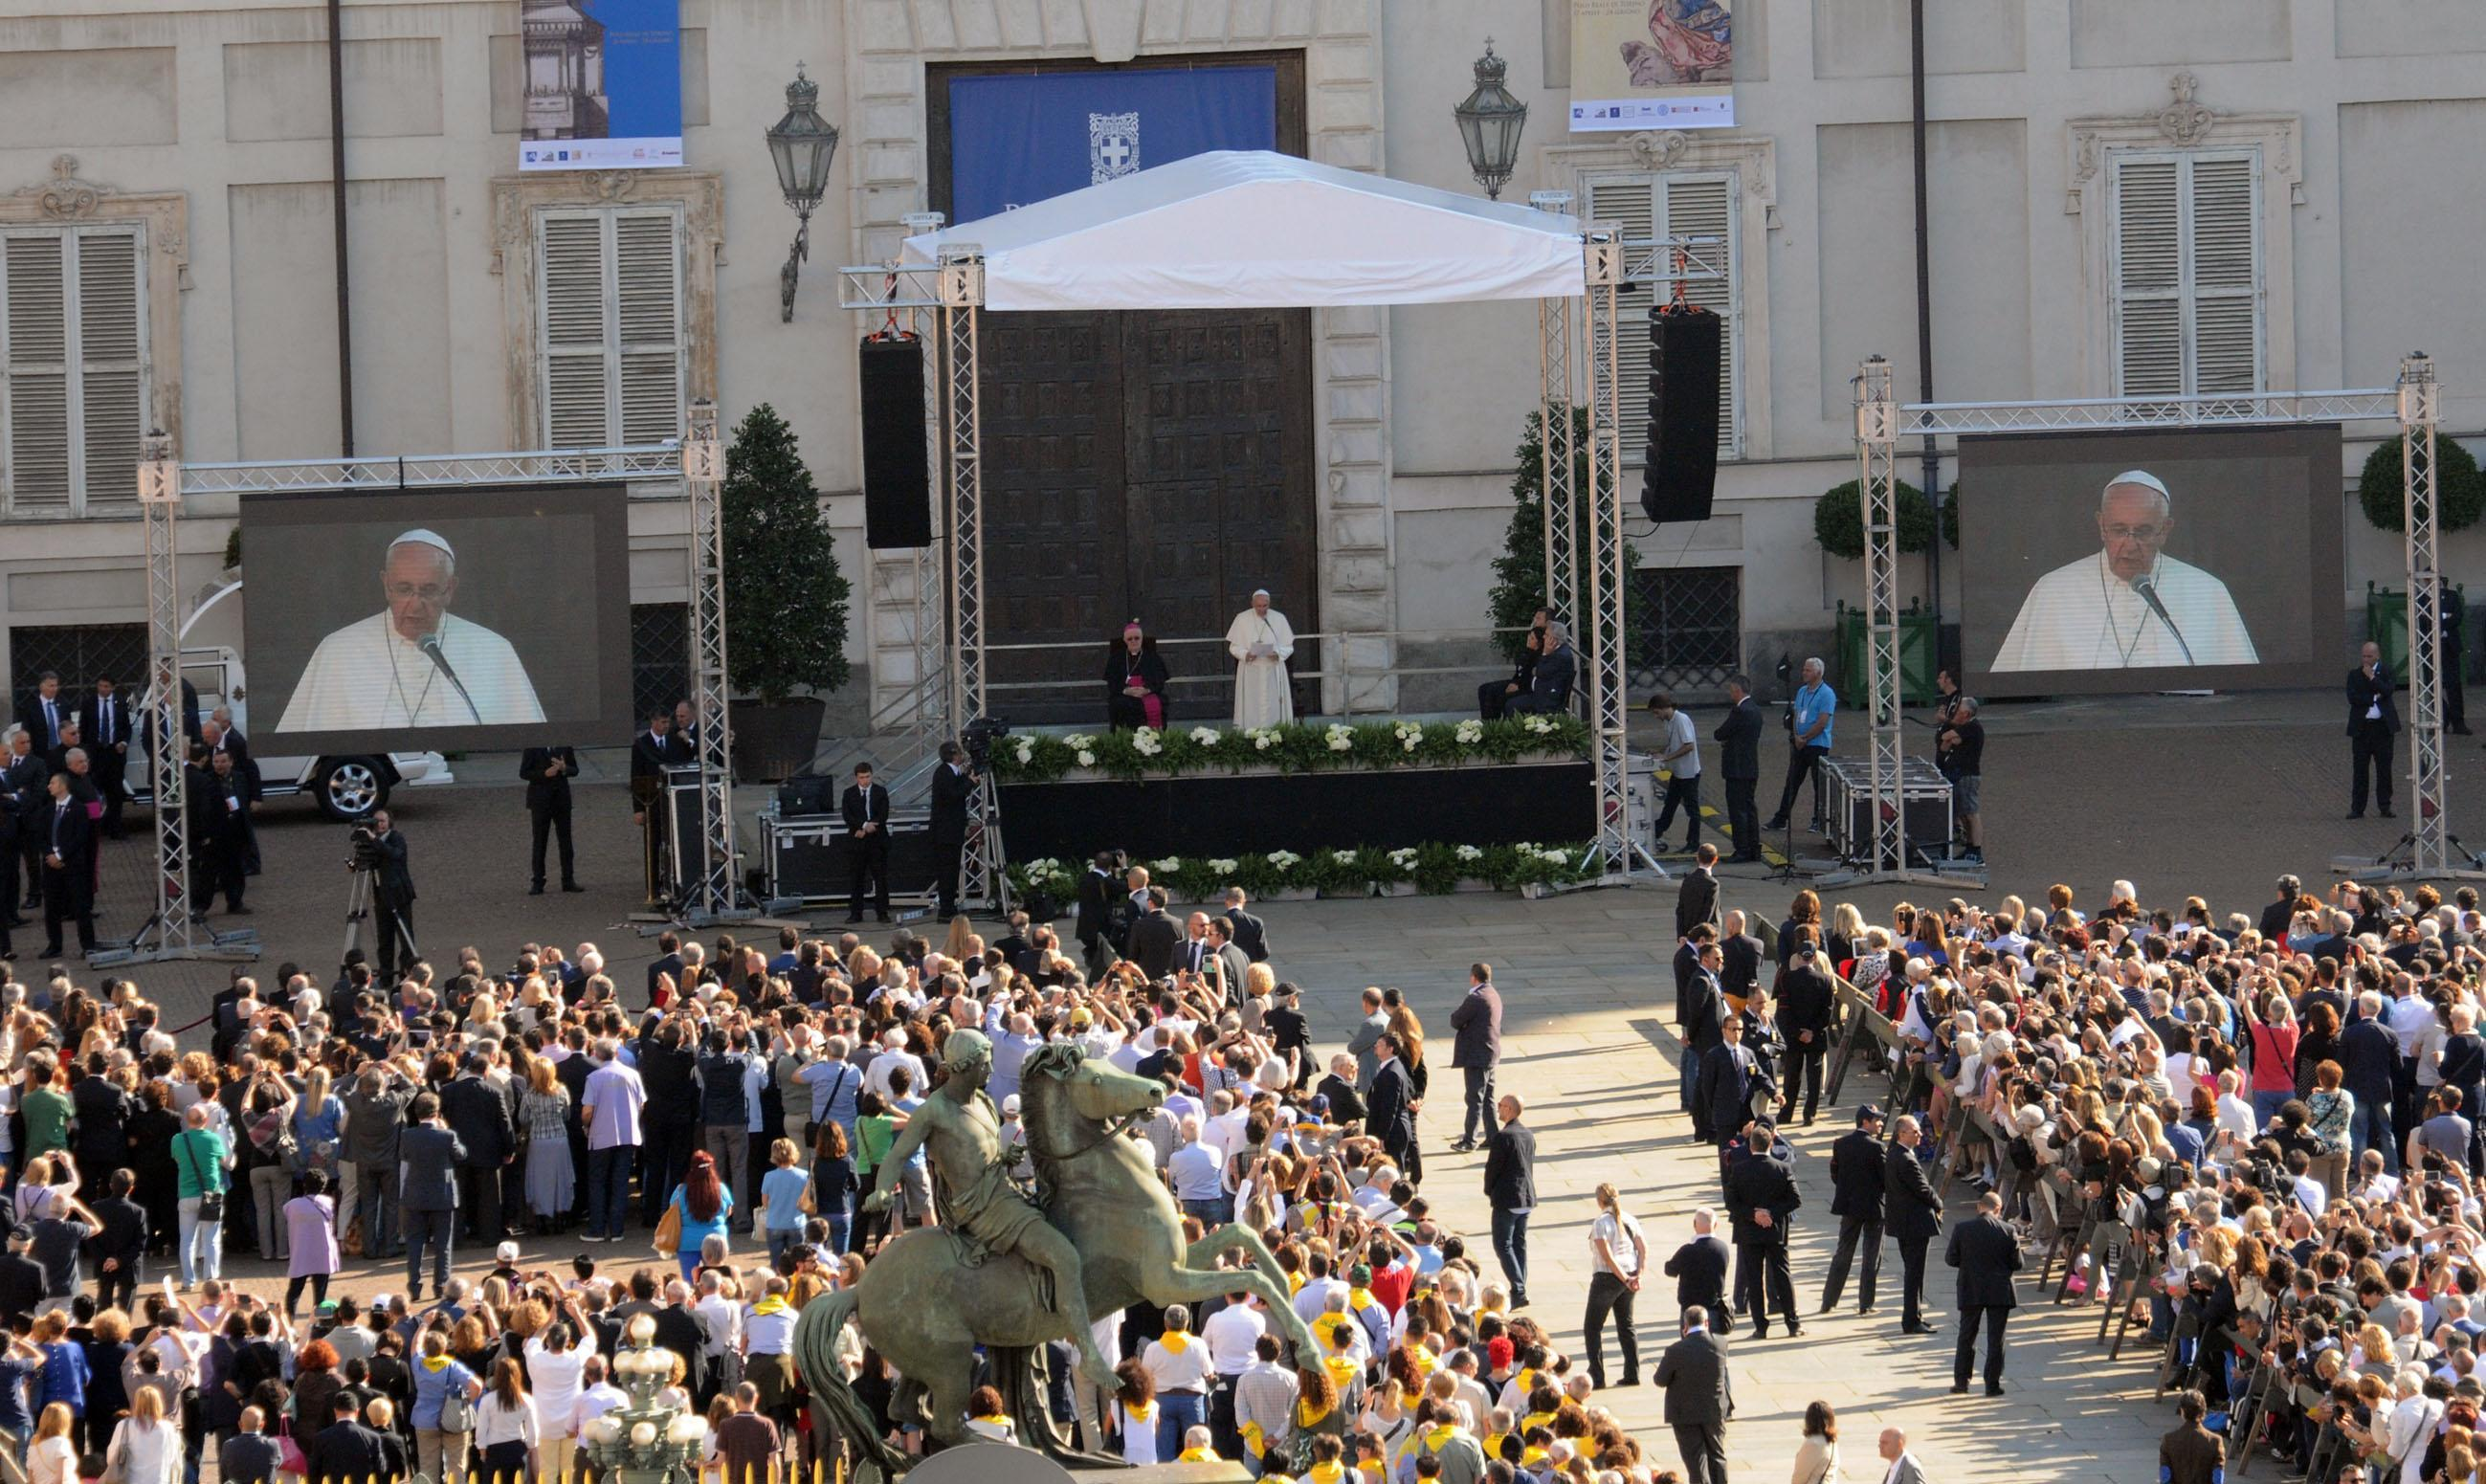 Pope Francis delivers a speech in Piazzetta Reale during his visit in Turin